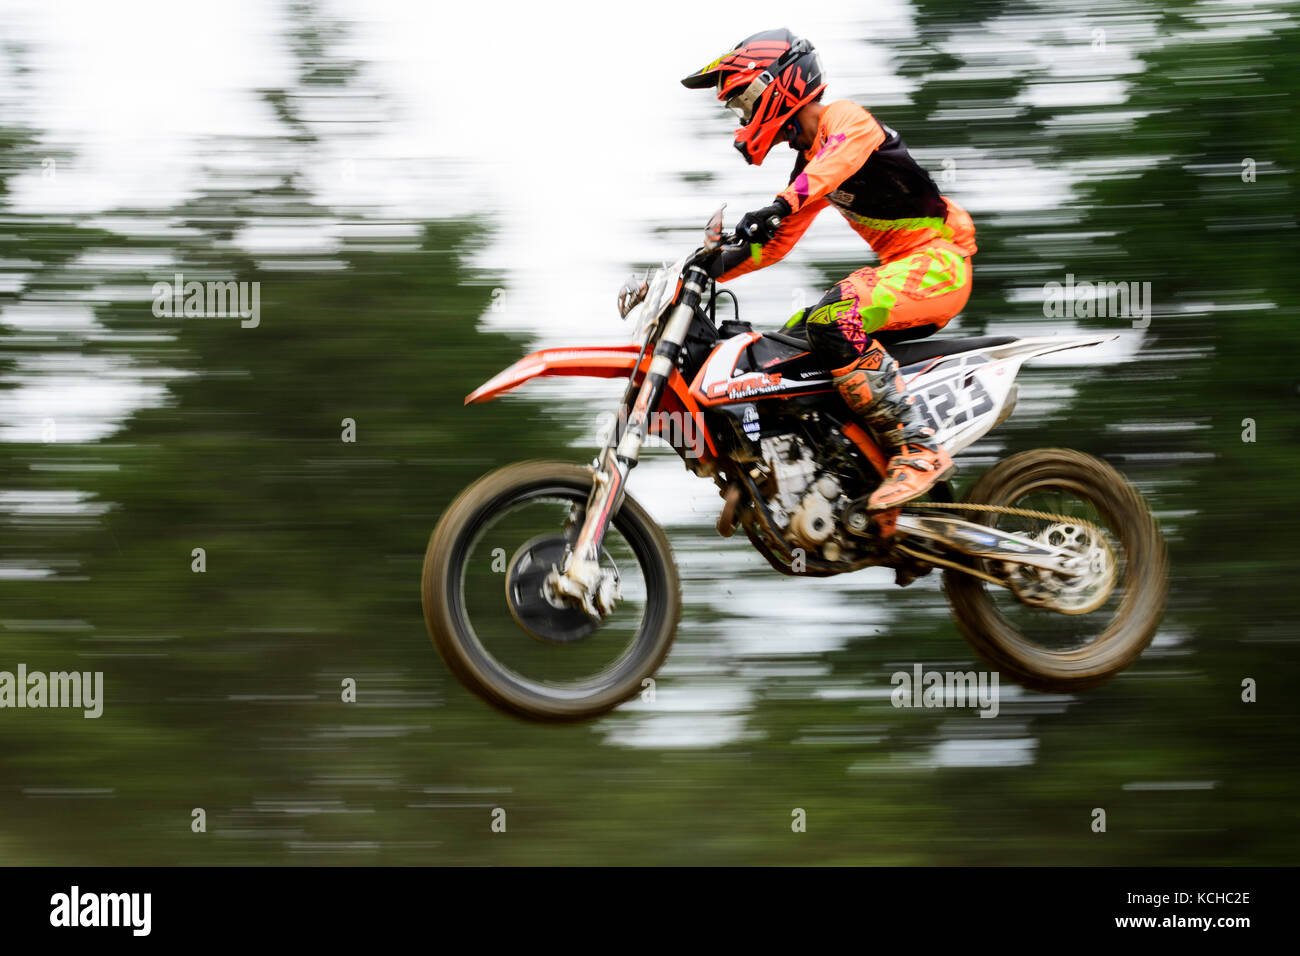 Racing action during the Rockstar Energy Drink Motocross Nationals at the Wastelands in Nanaimo, British Columbia. - Stock Image